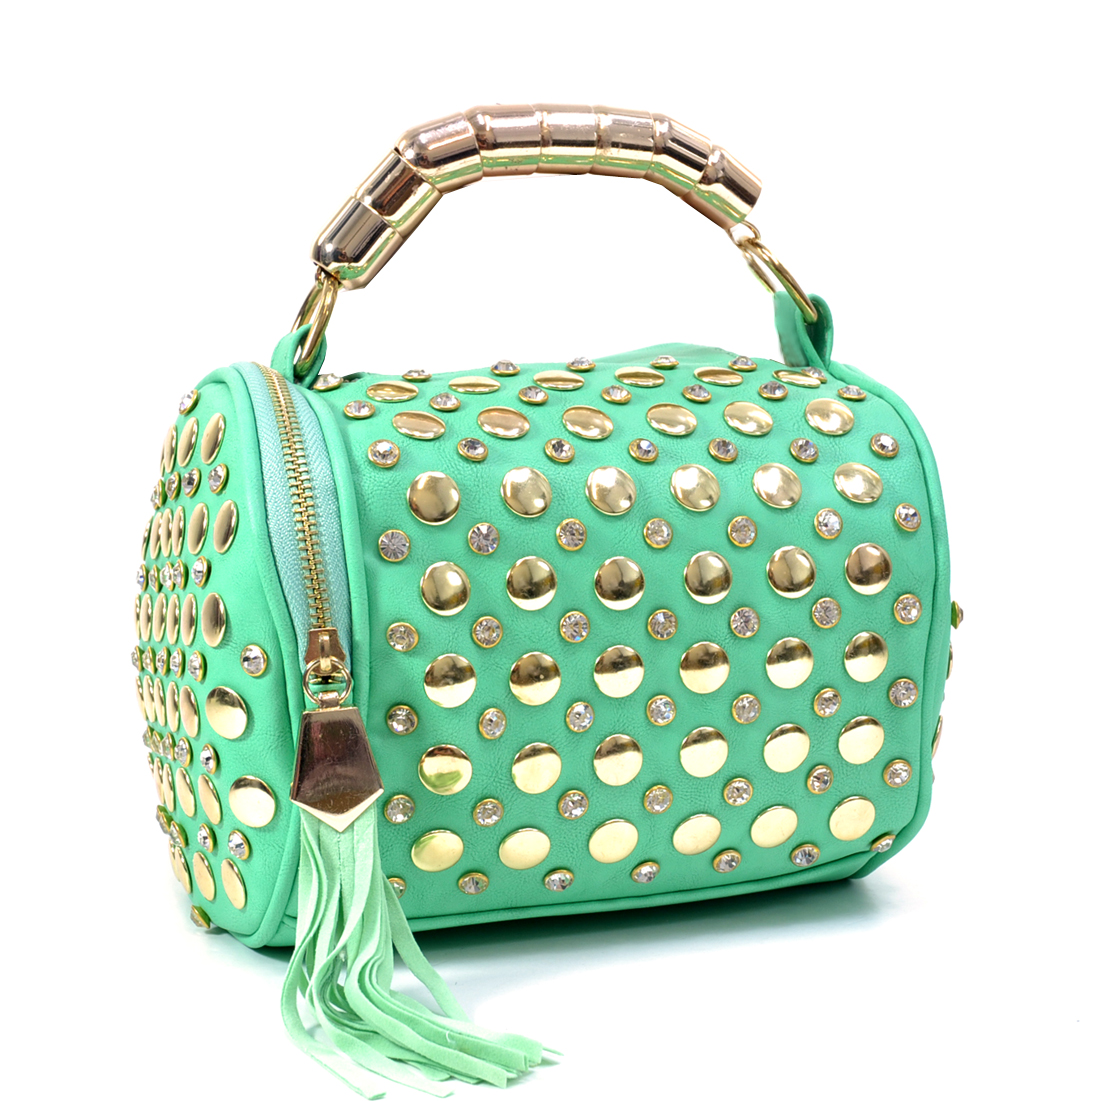 Rhinestone Studded Barrel Bag w/Fringe Accent and Zip Around Closure